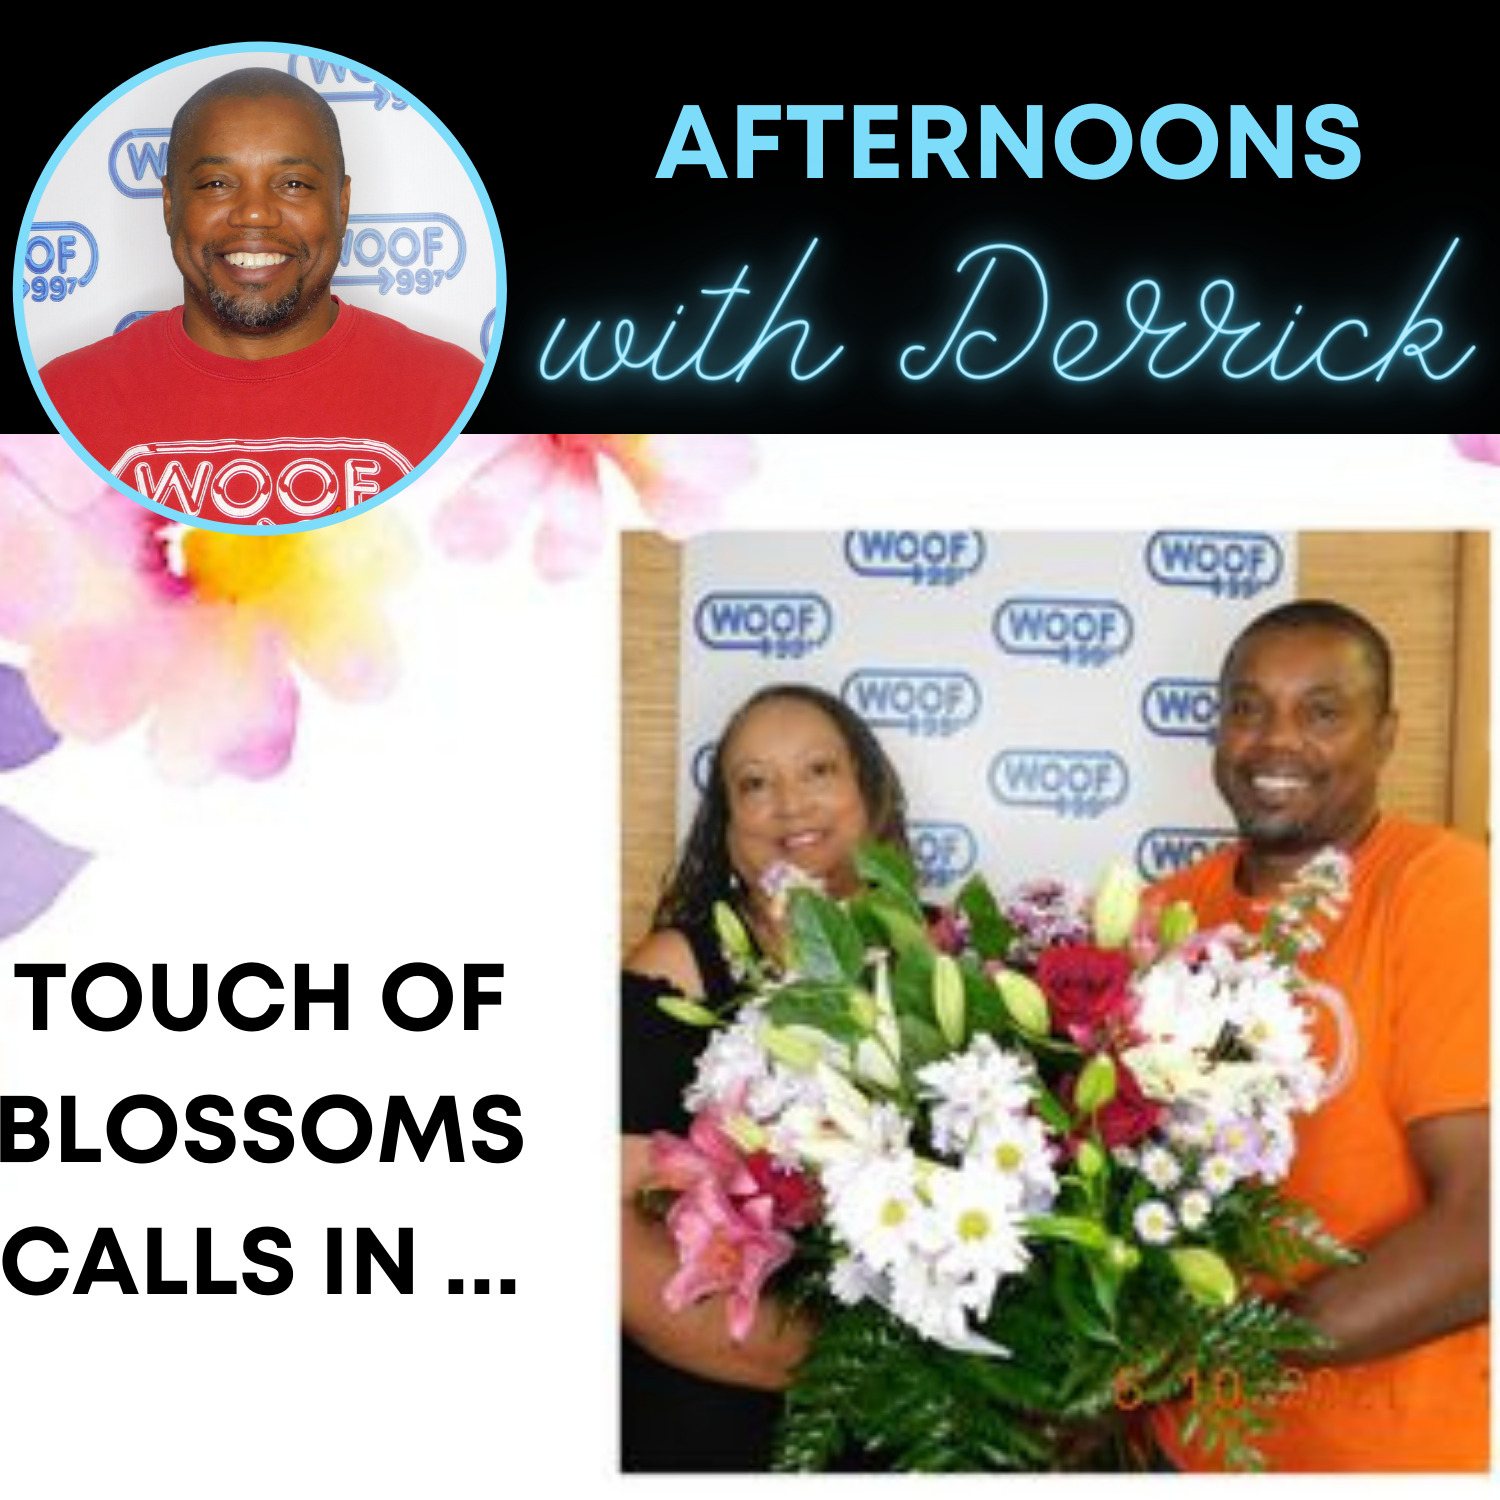 Touch of Blossoms calls in and…